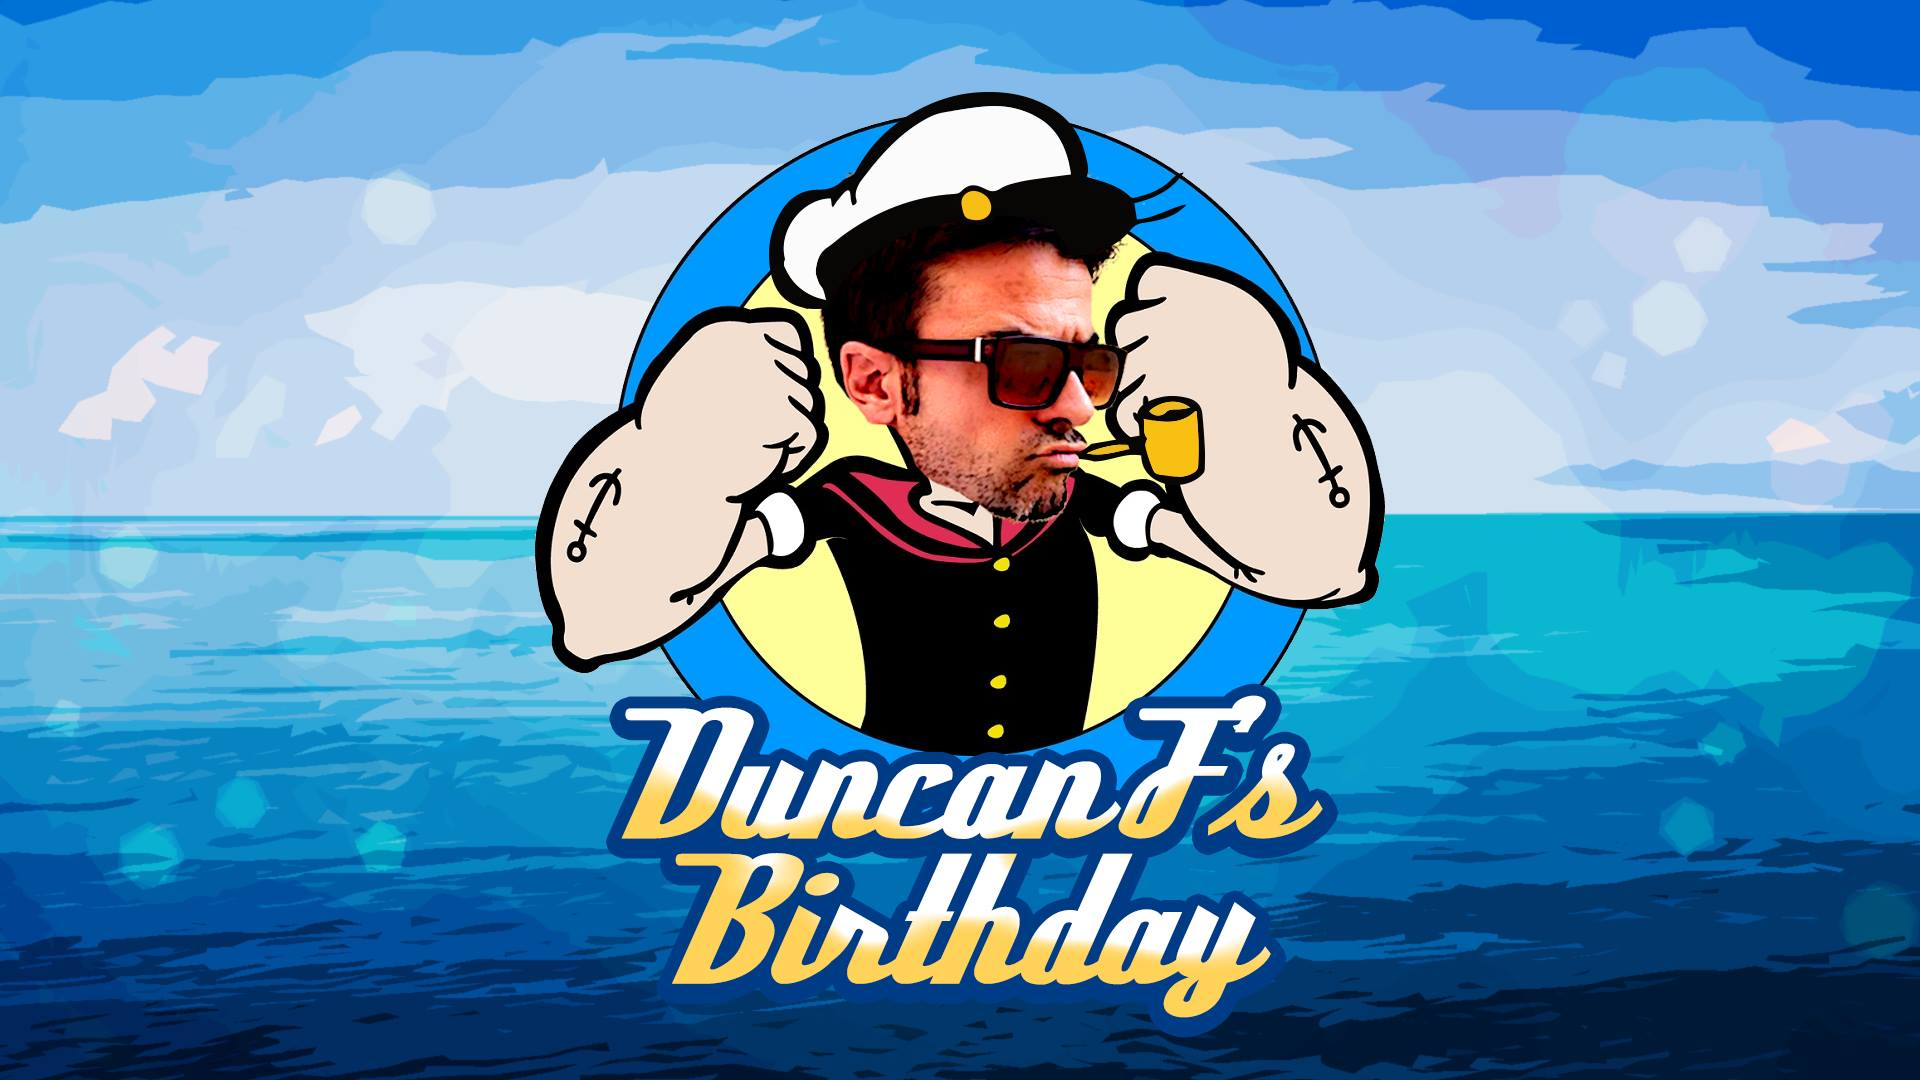 duncan-f-birthday boat party malta